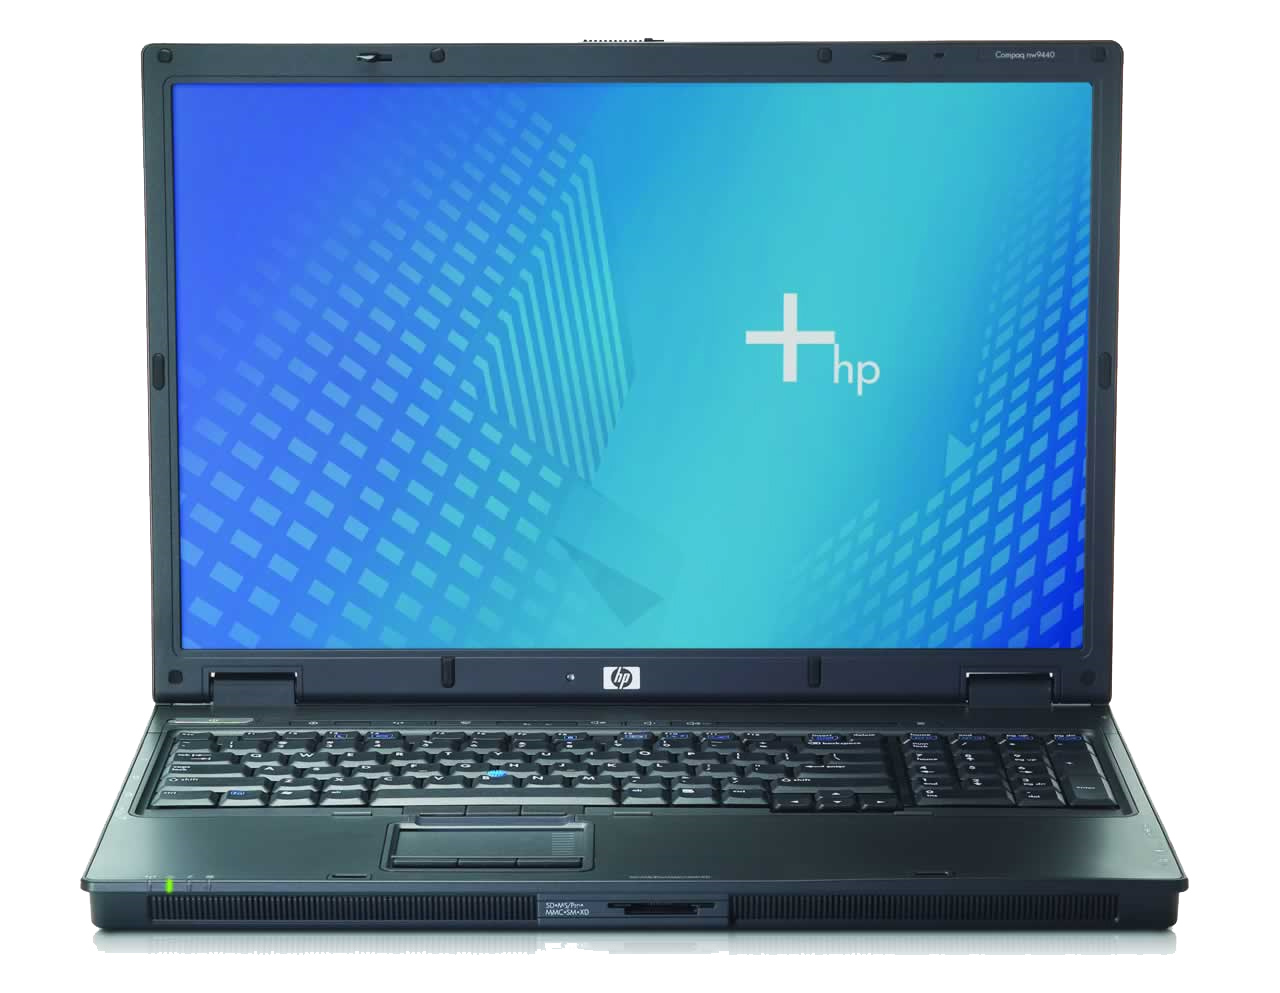 Review HP 620 Notebook